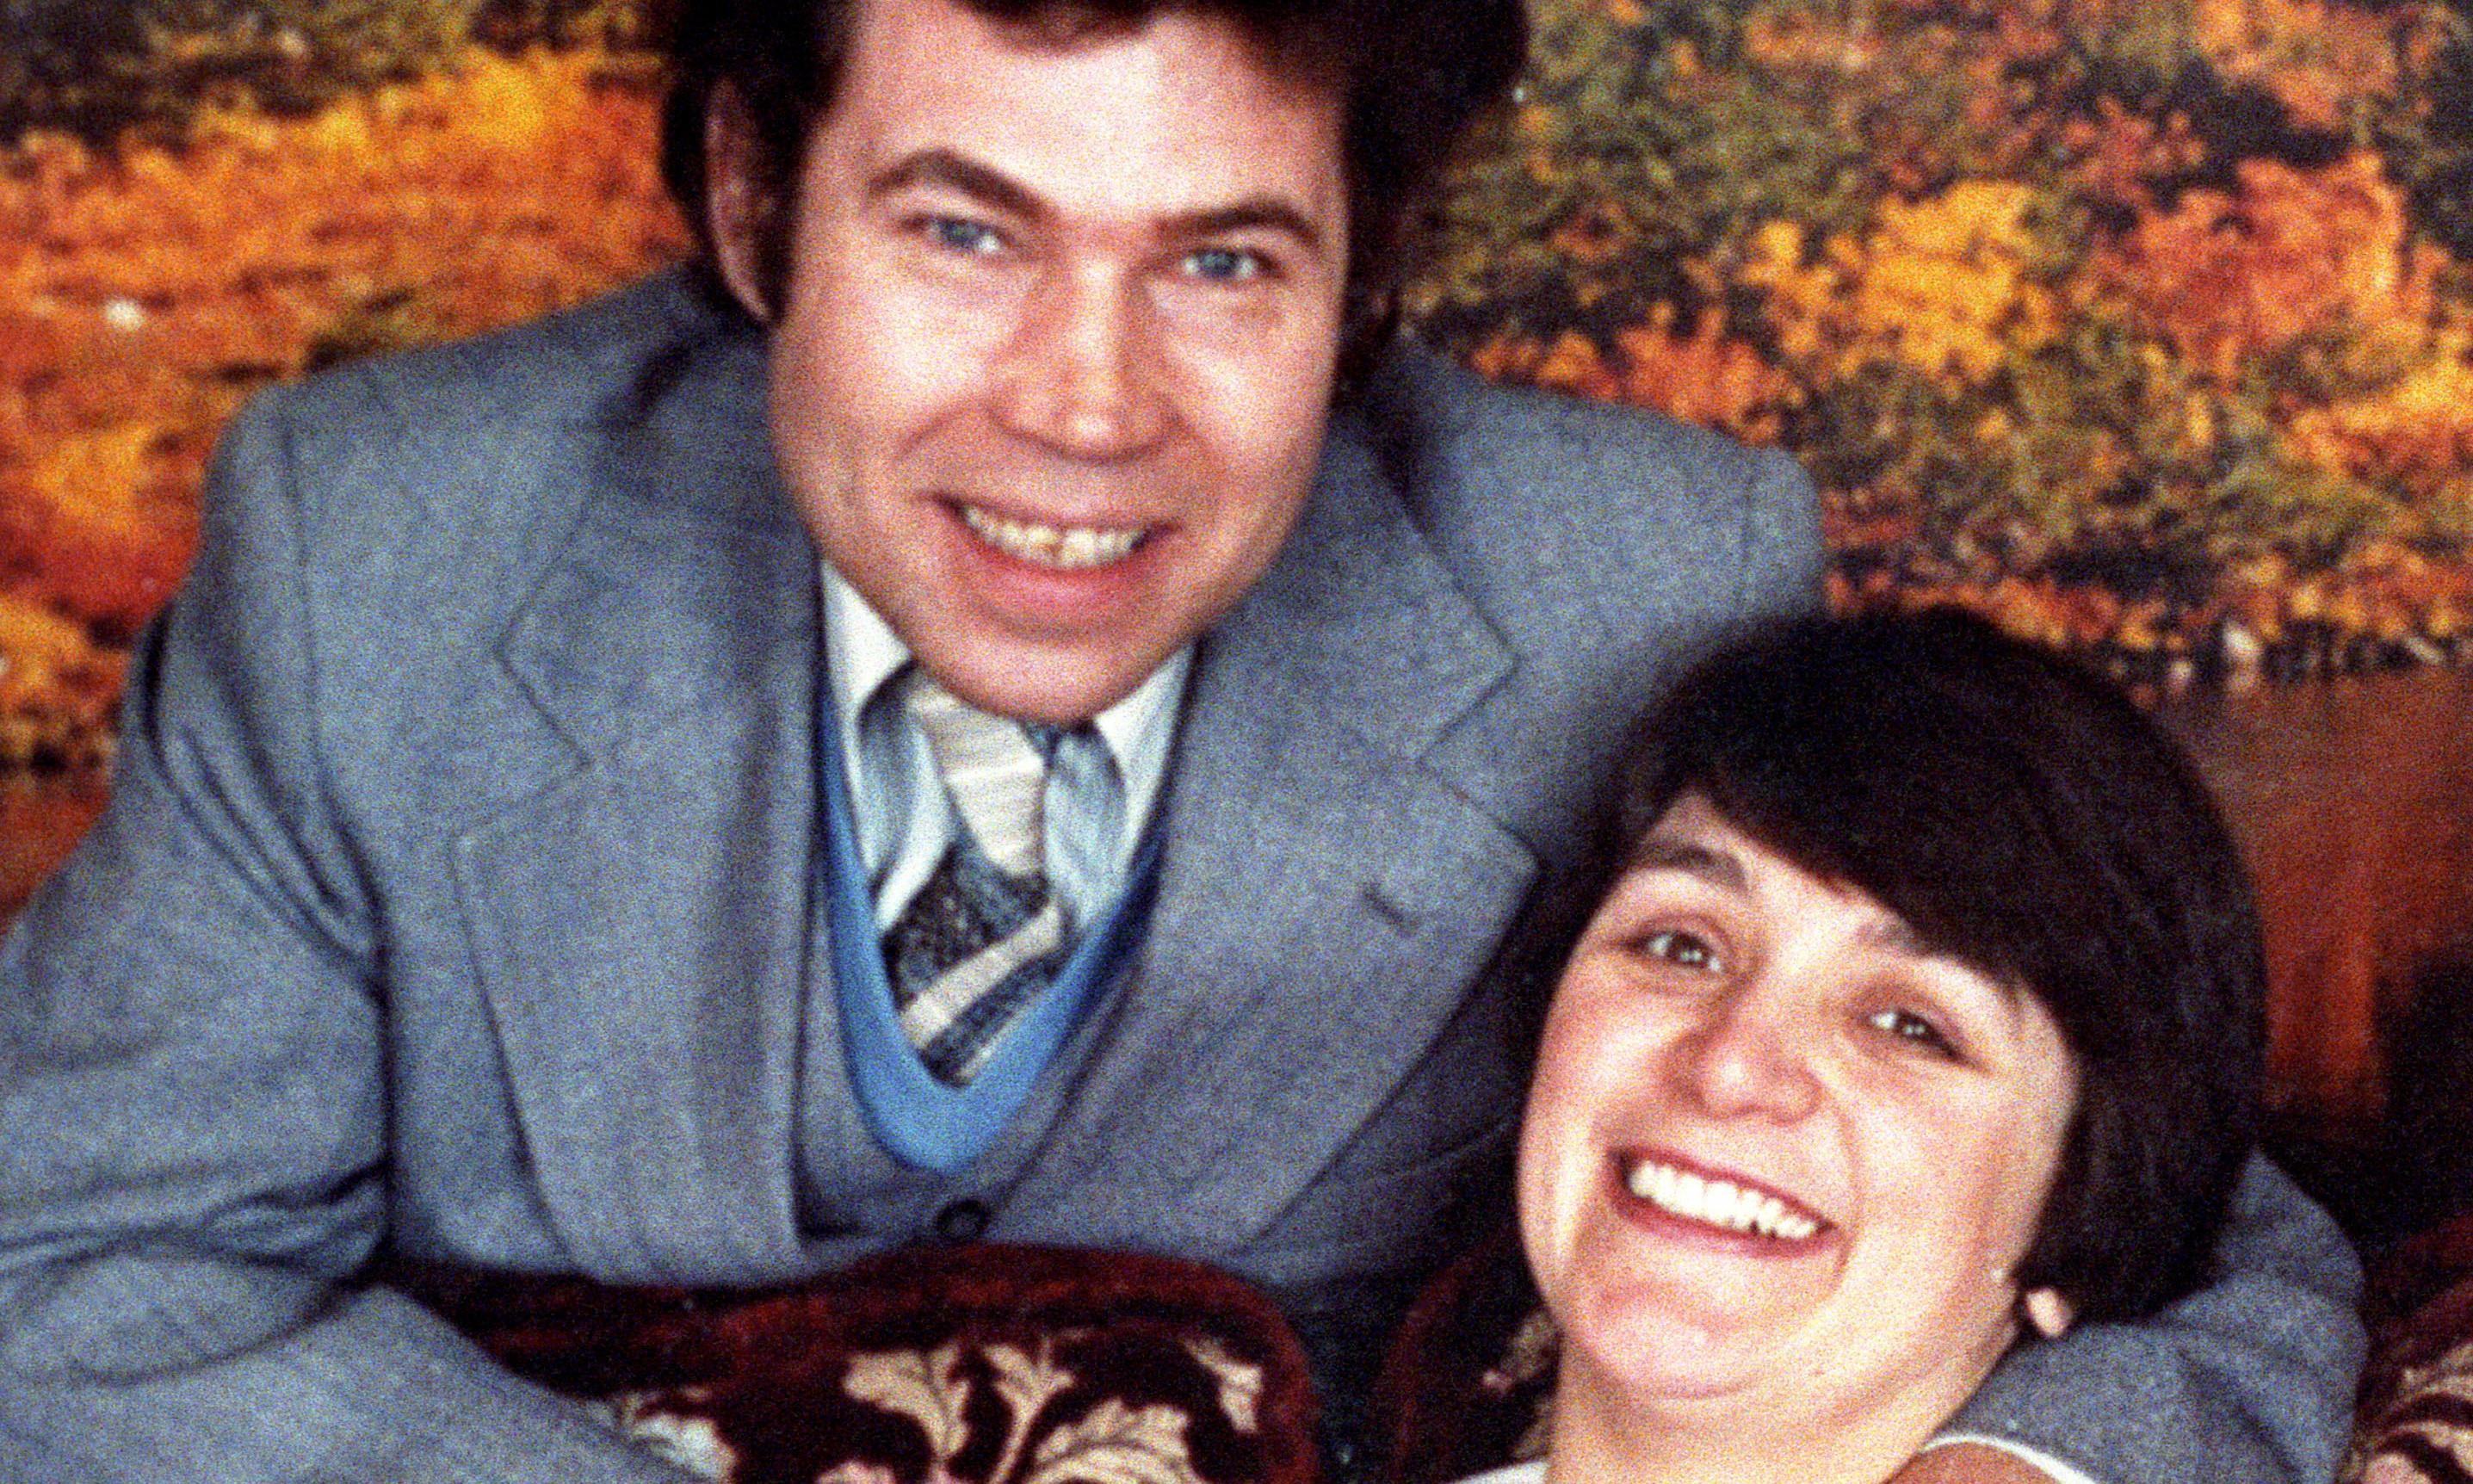 In the 25 years since Fred and Rose West, court reporting has collapsed